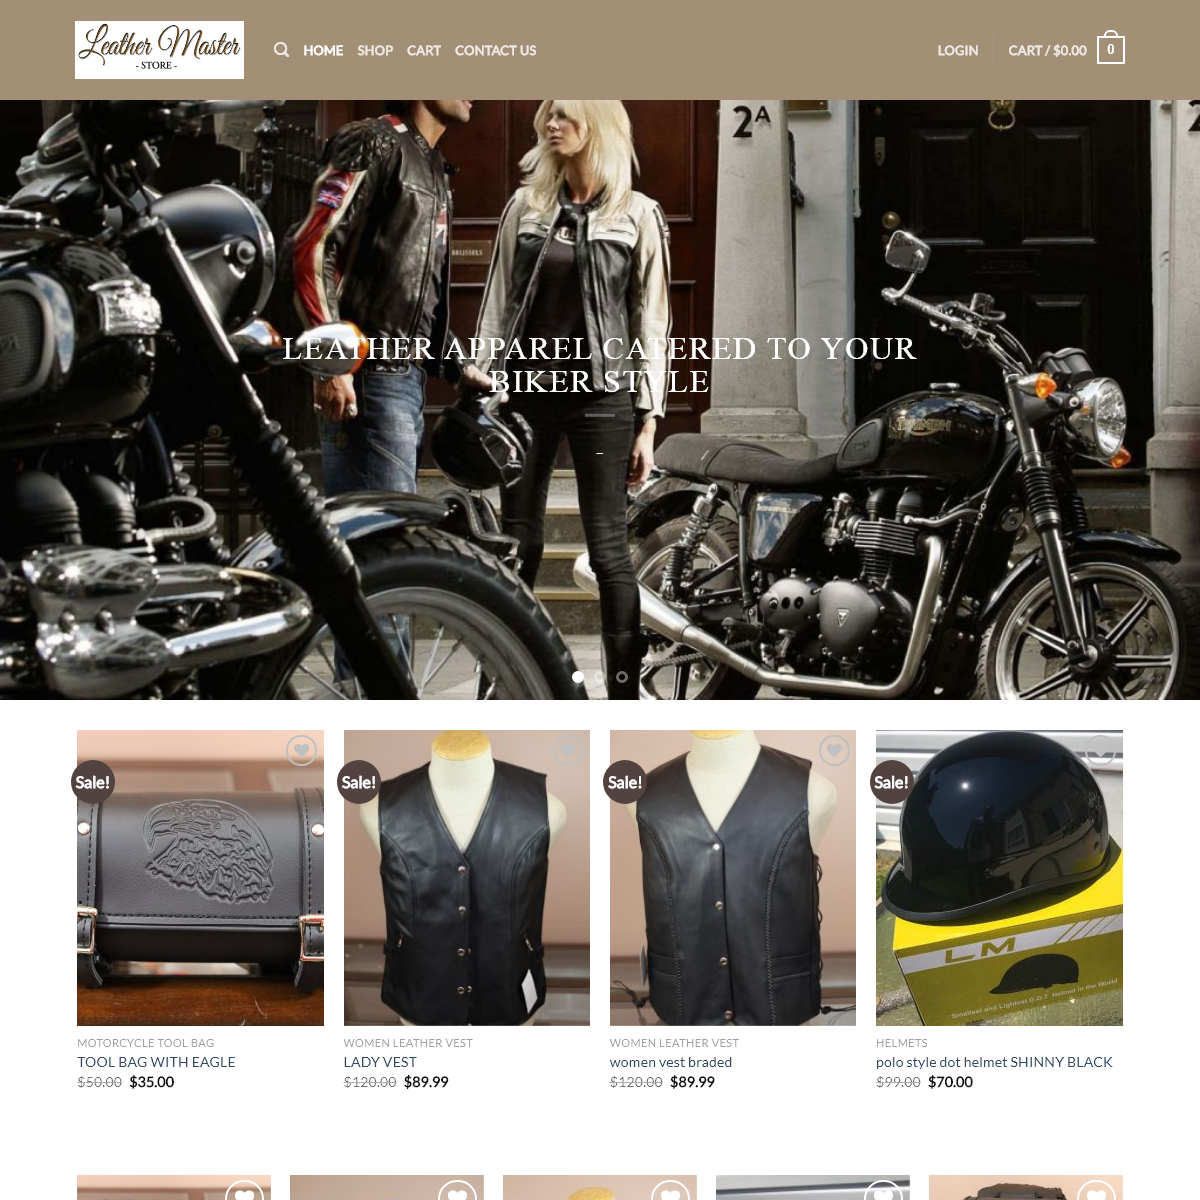 Leather Master Store